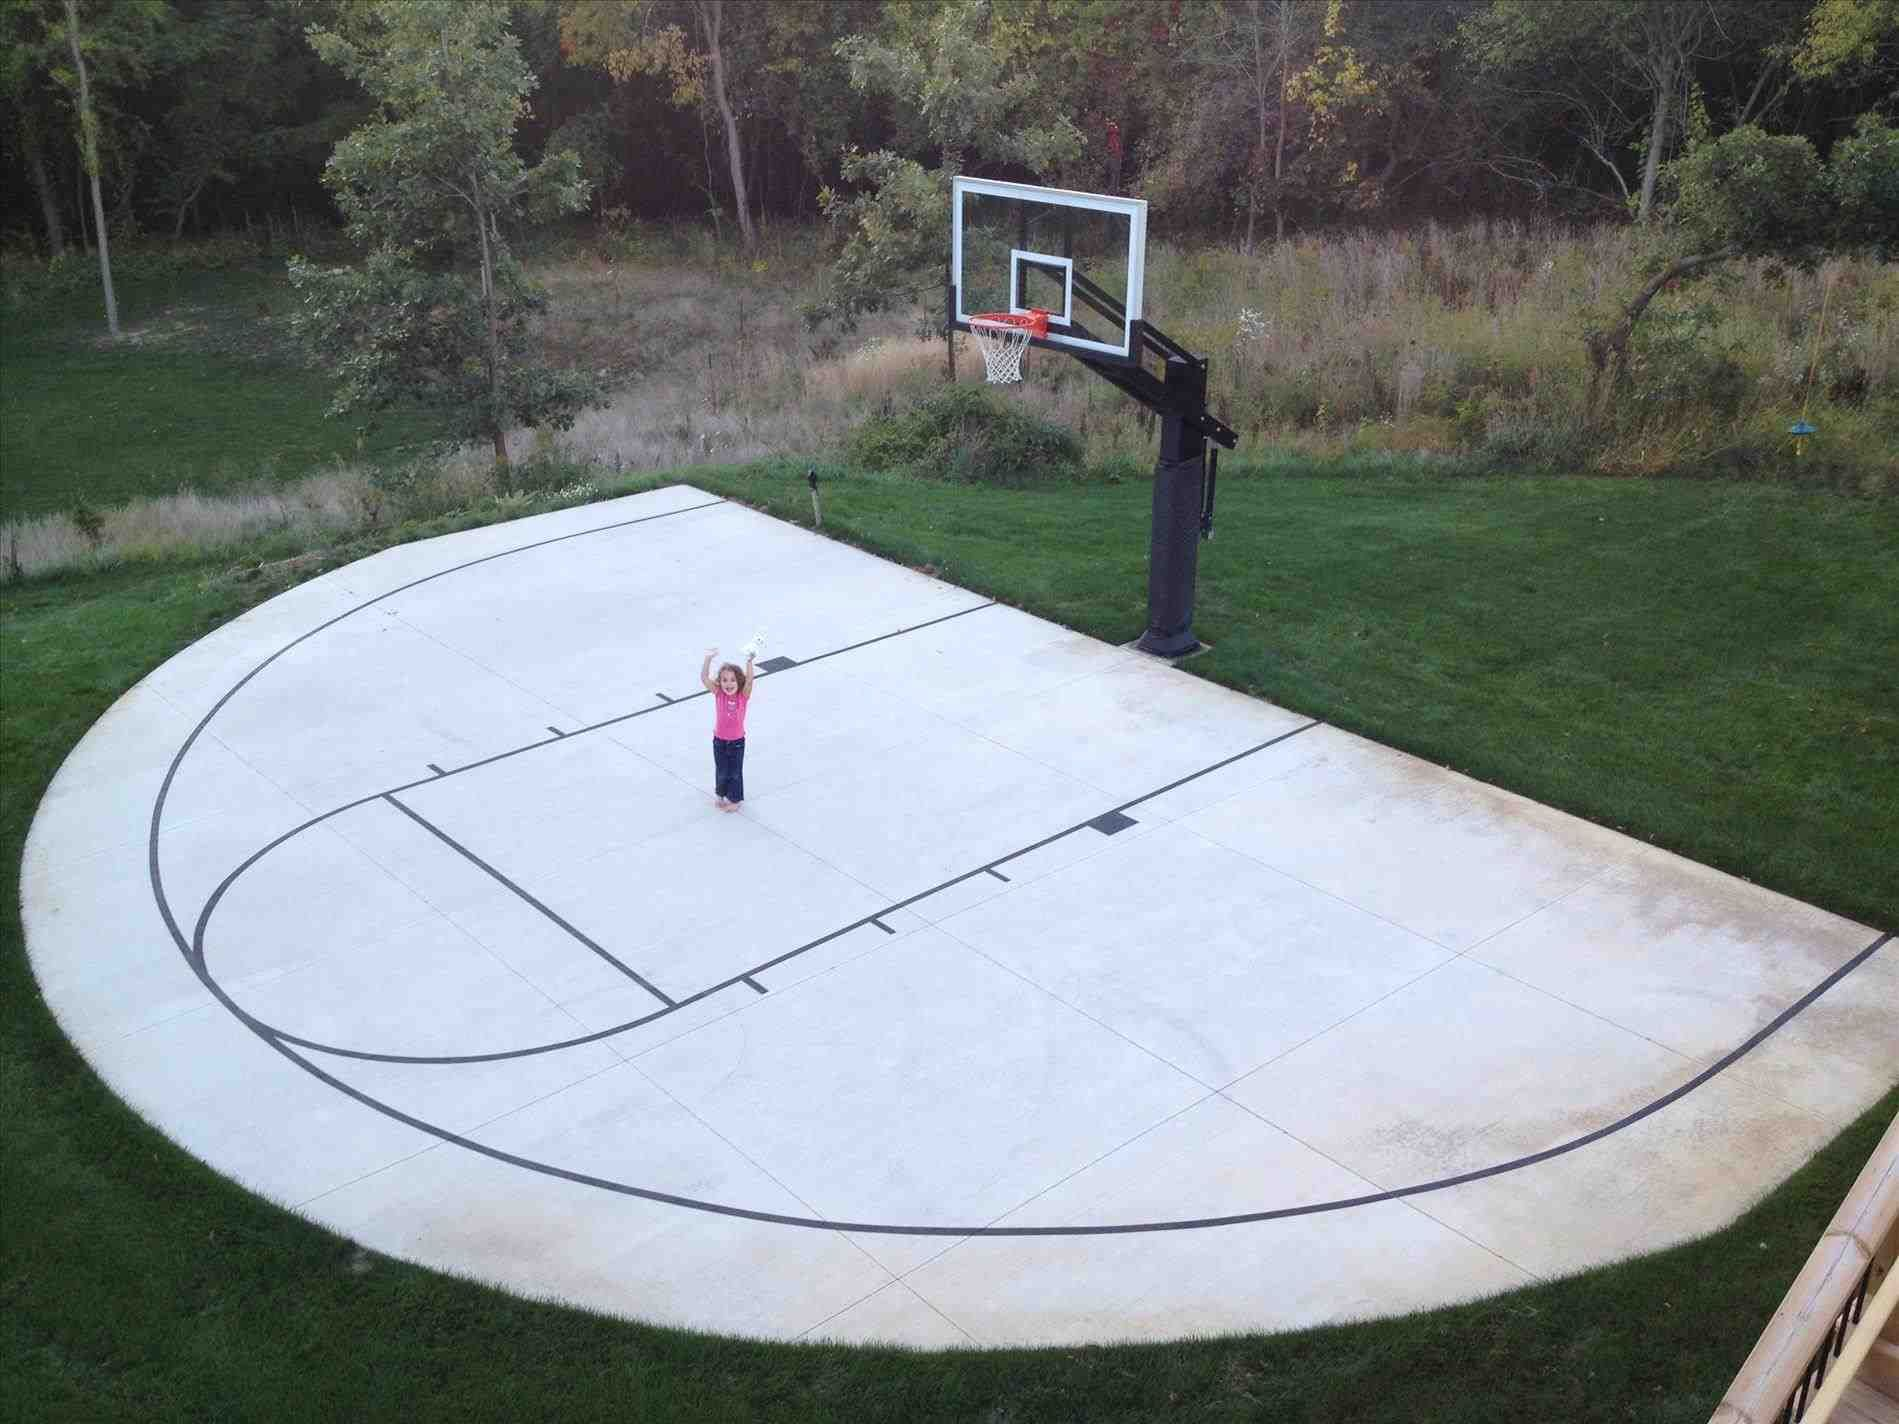 Half Basketball Court In Backyard Uniquely Shaped Court Allows For